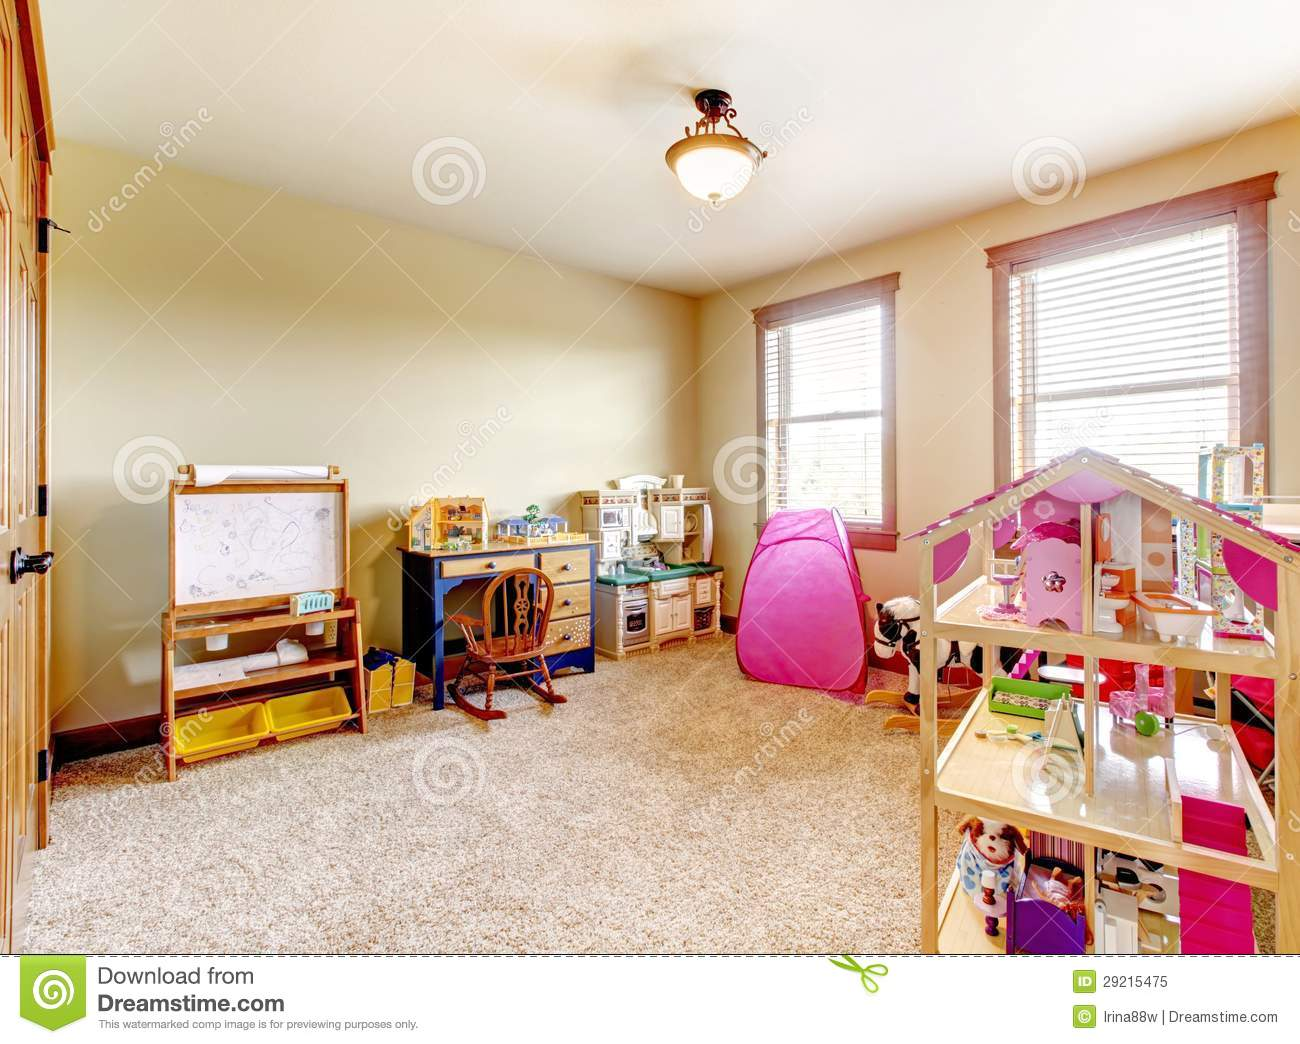 Kids Play Room With Toys Interior Royalty Free Stock Photo Image 29215475